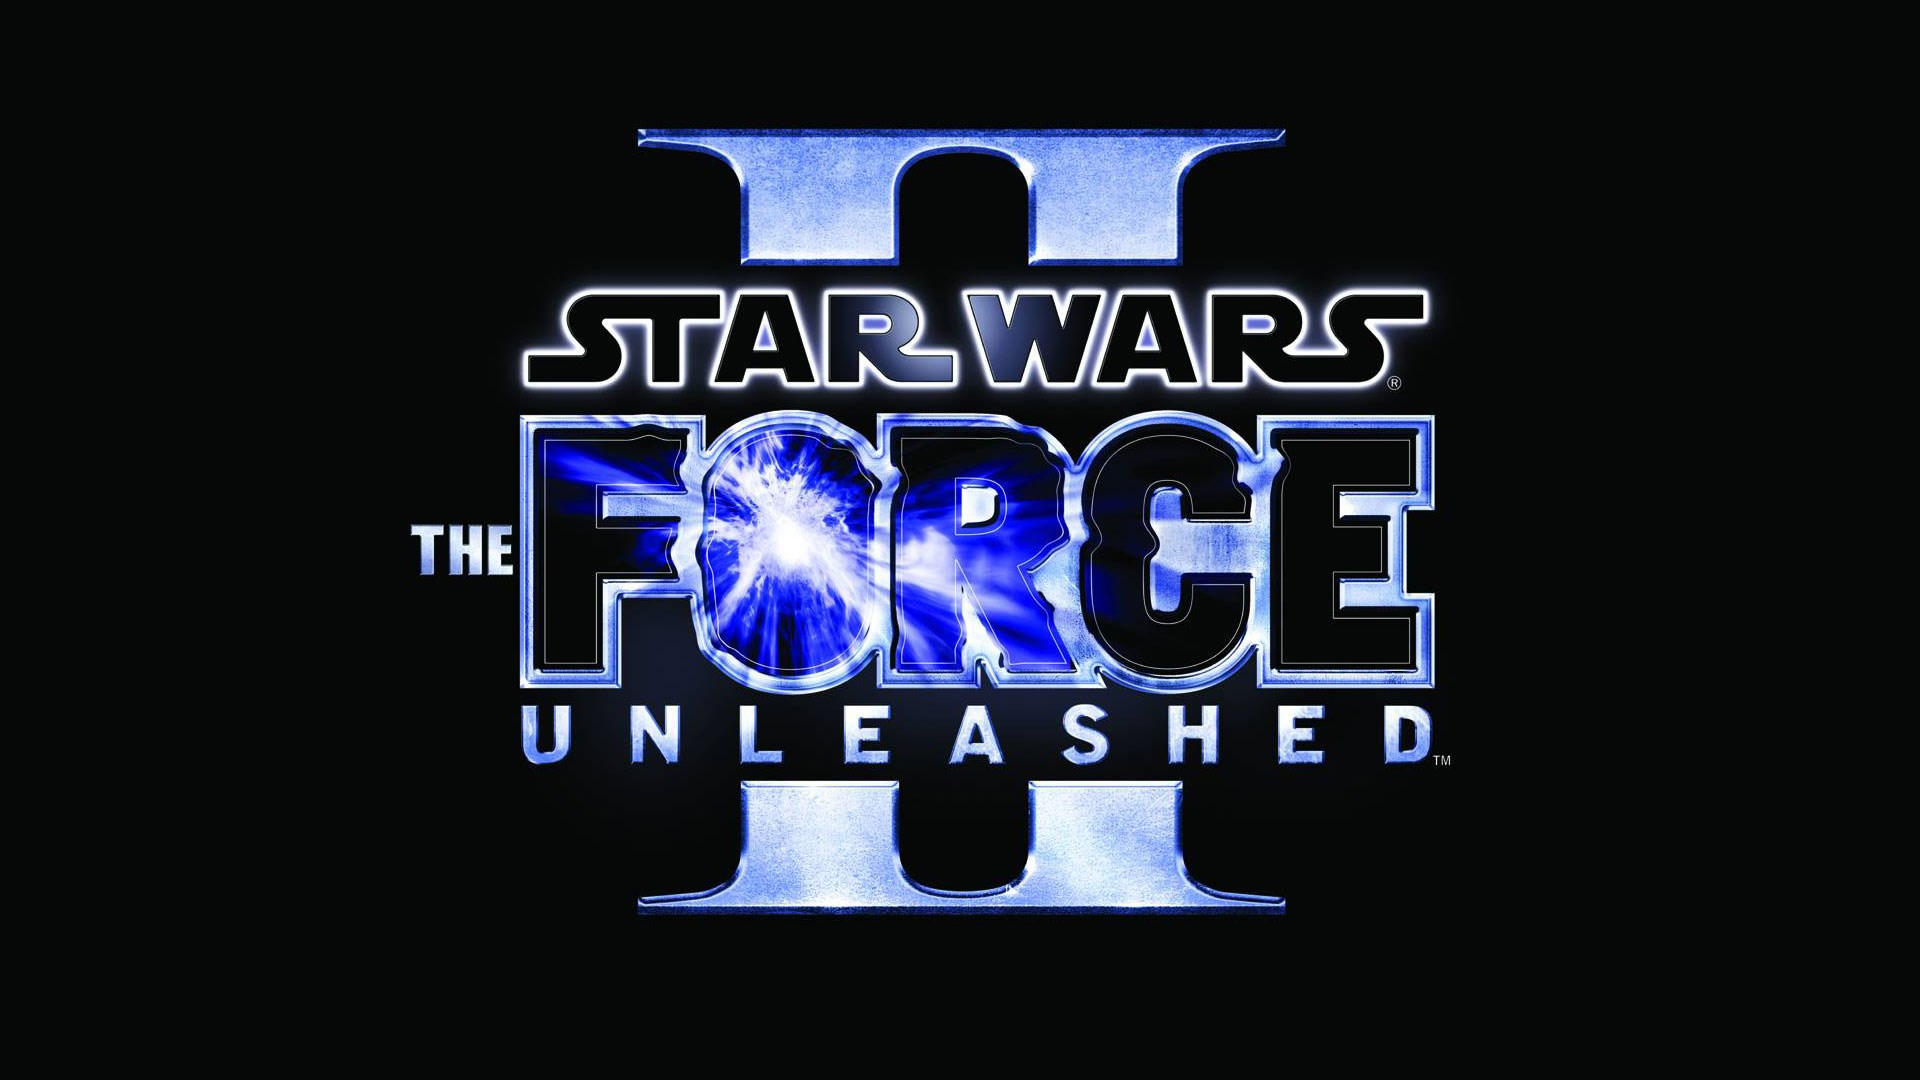 1920x1080-windows-star-wars-the-force-unleashed-ii-wallpaper-wpc5801127